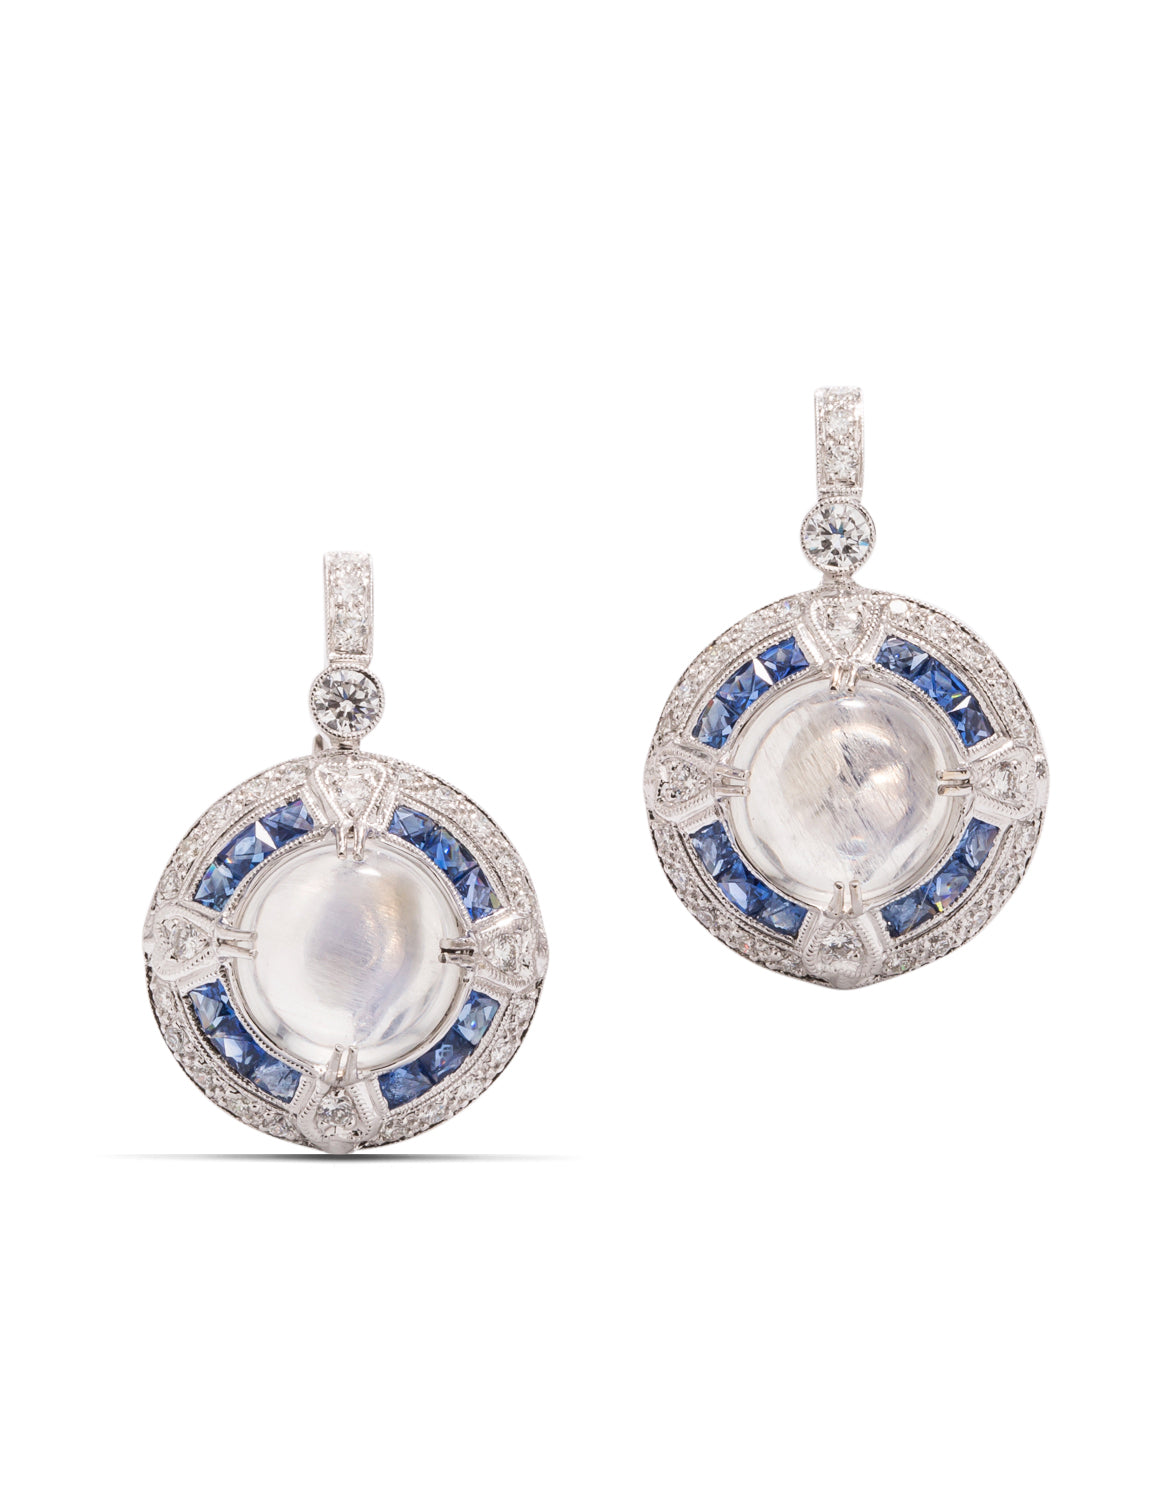 Moonstone, Sapphire and Diamond Earrings - Charles Koll Jewellers